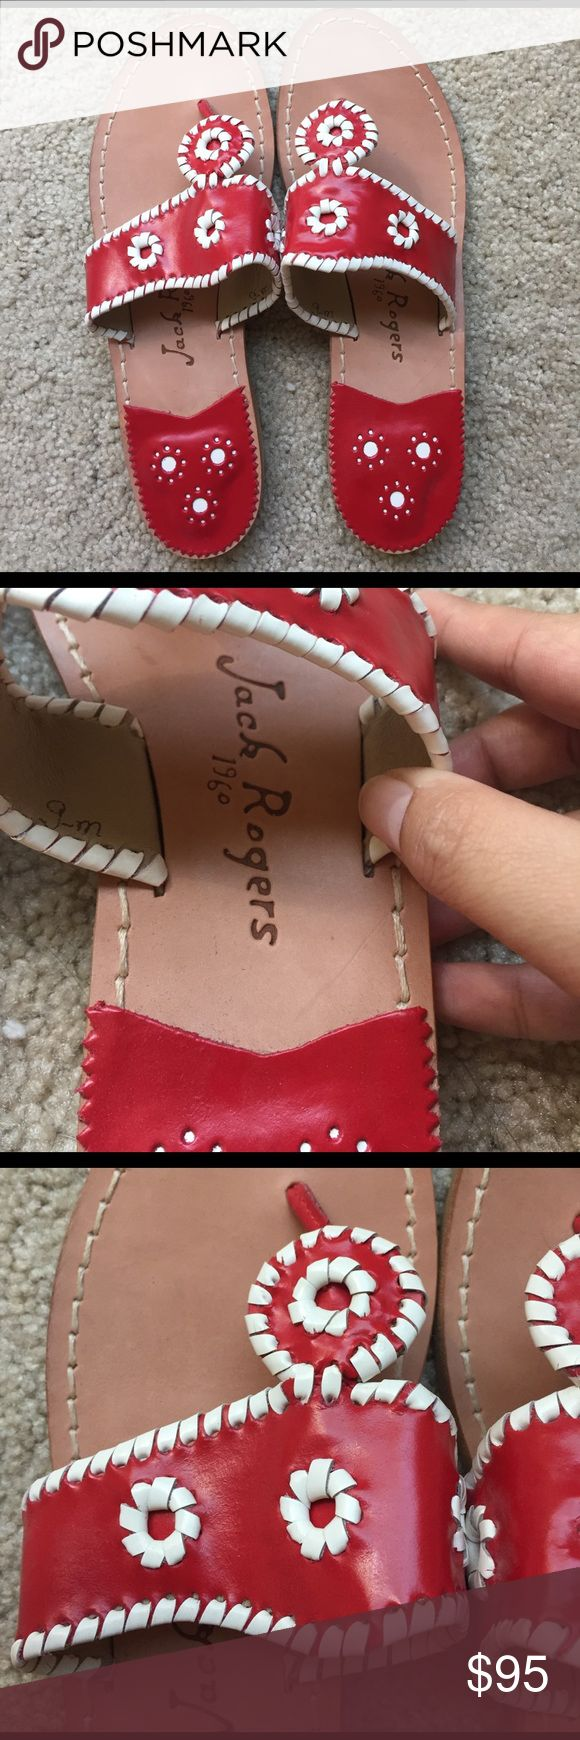 NEVER WORN Red and White Jack Rogers Sandals! These are unique and have never been worn! These would go great to accessorize an outfit that red would compliment, and they have no damage or tears-it's like getting a brand new pair! Would bundle with other Jacks in my closet so you can save! Jack Rogers Shoes Sandals